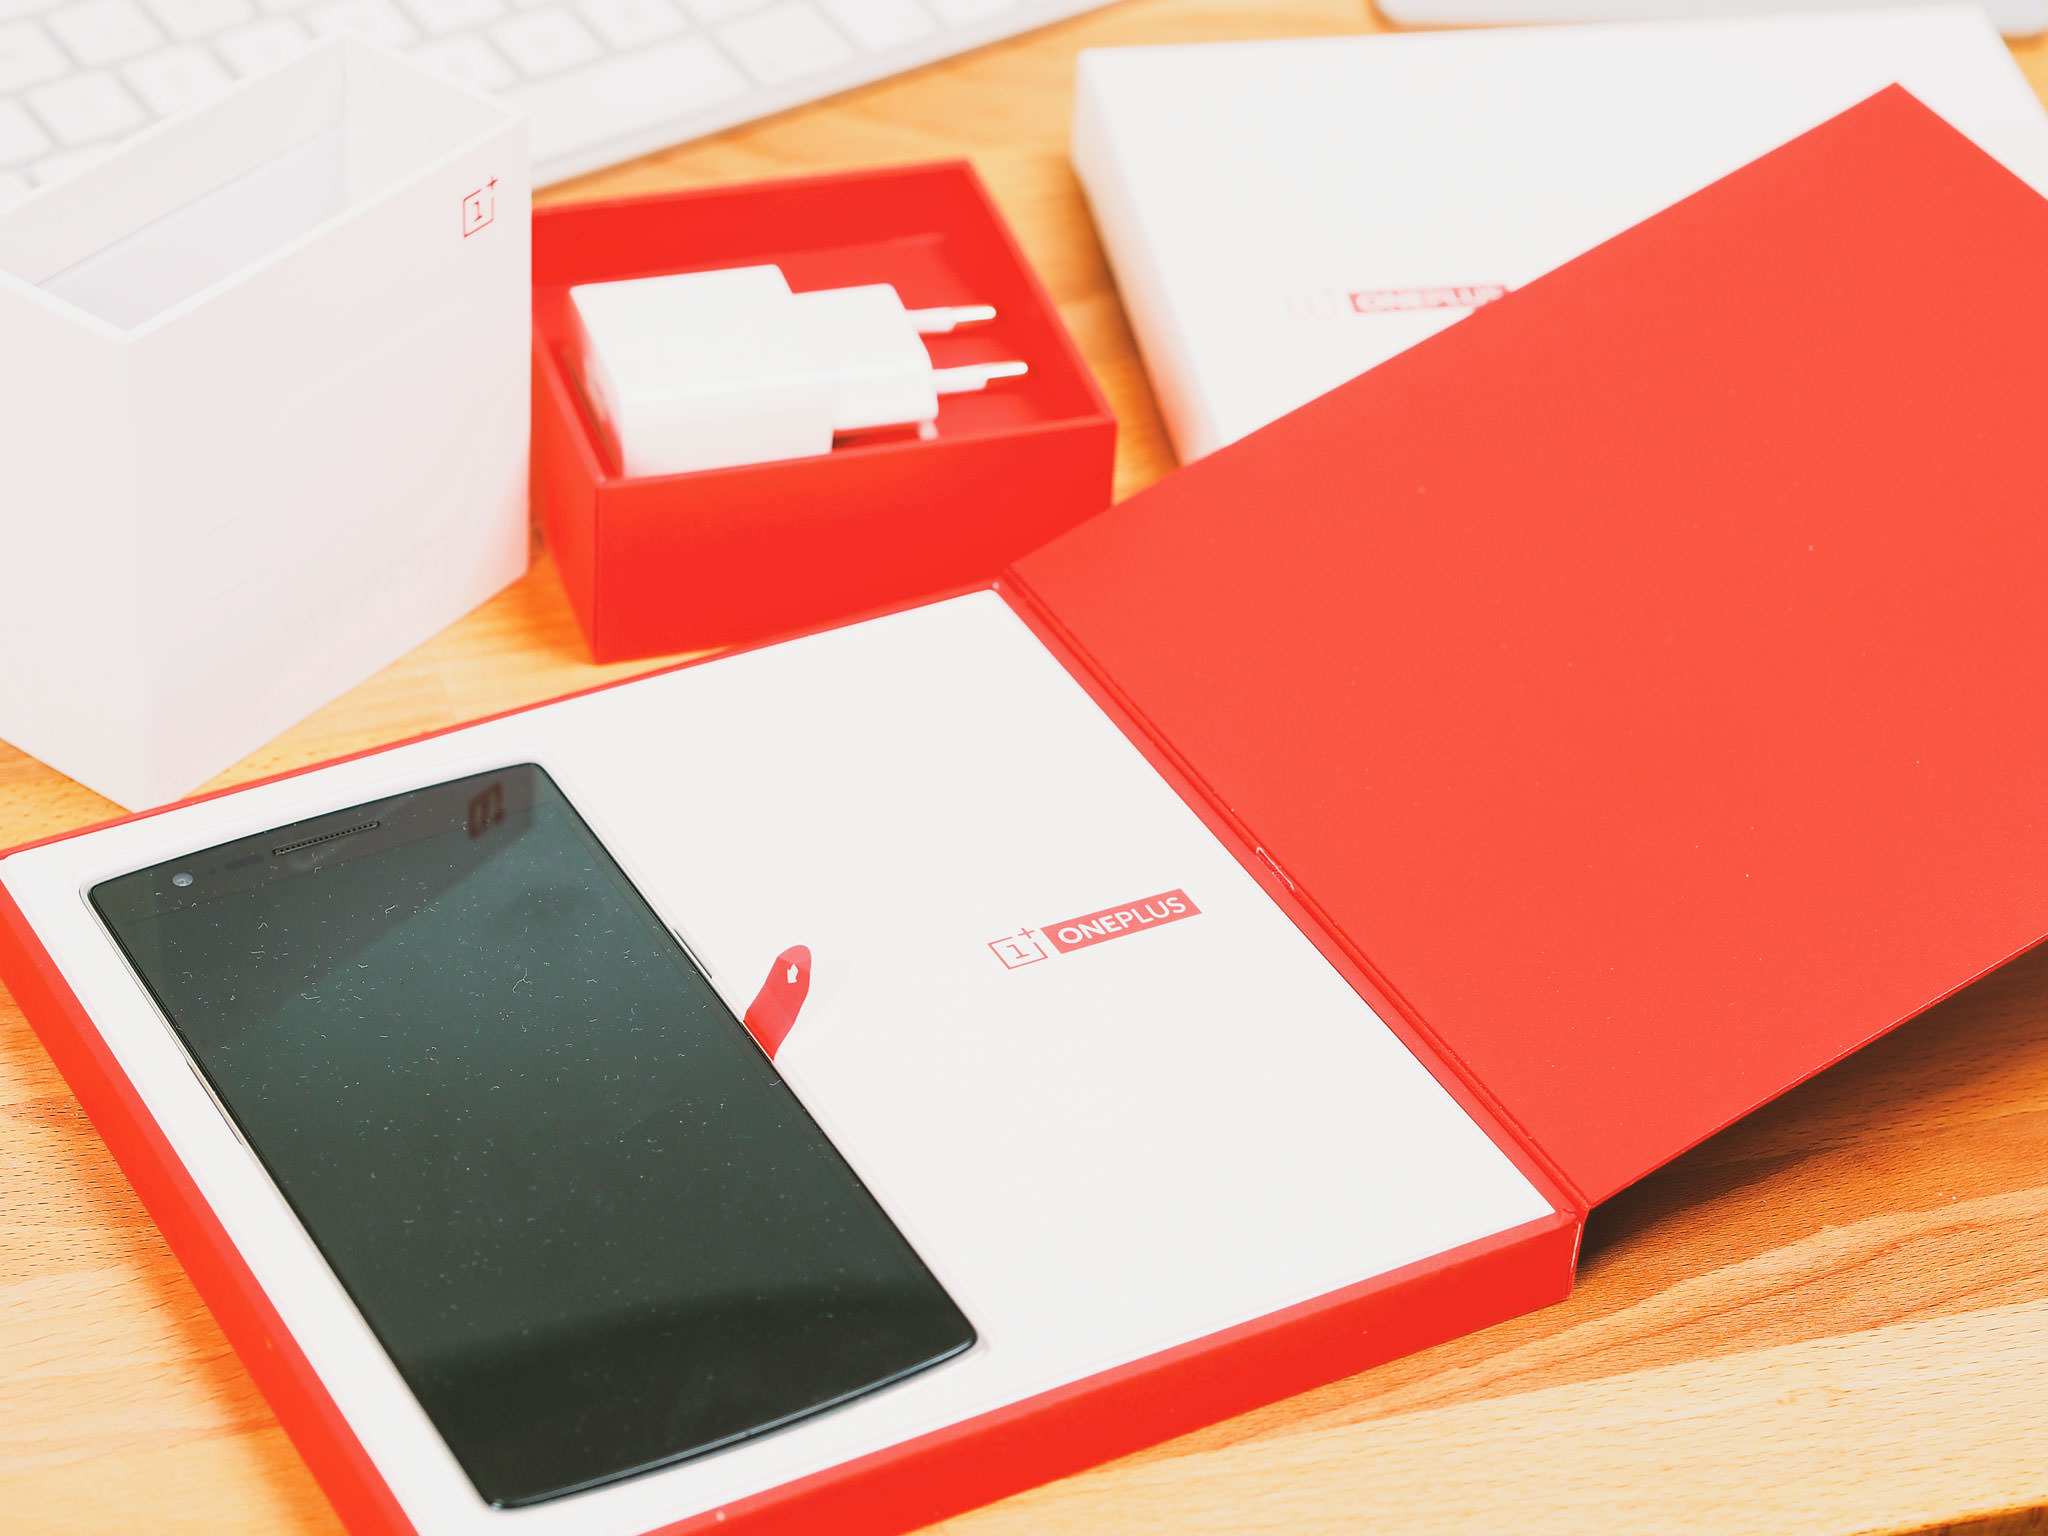 OnePlus-One-Package